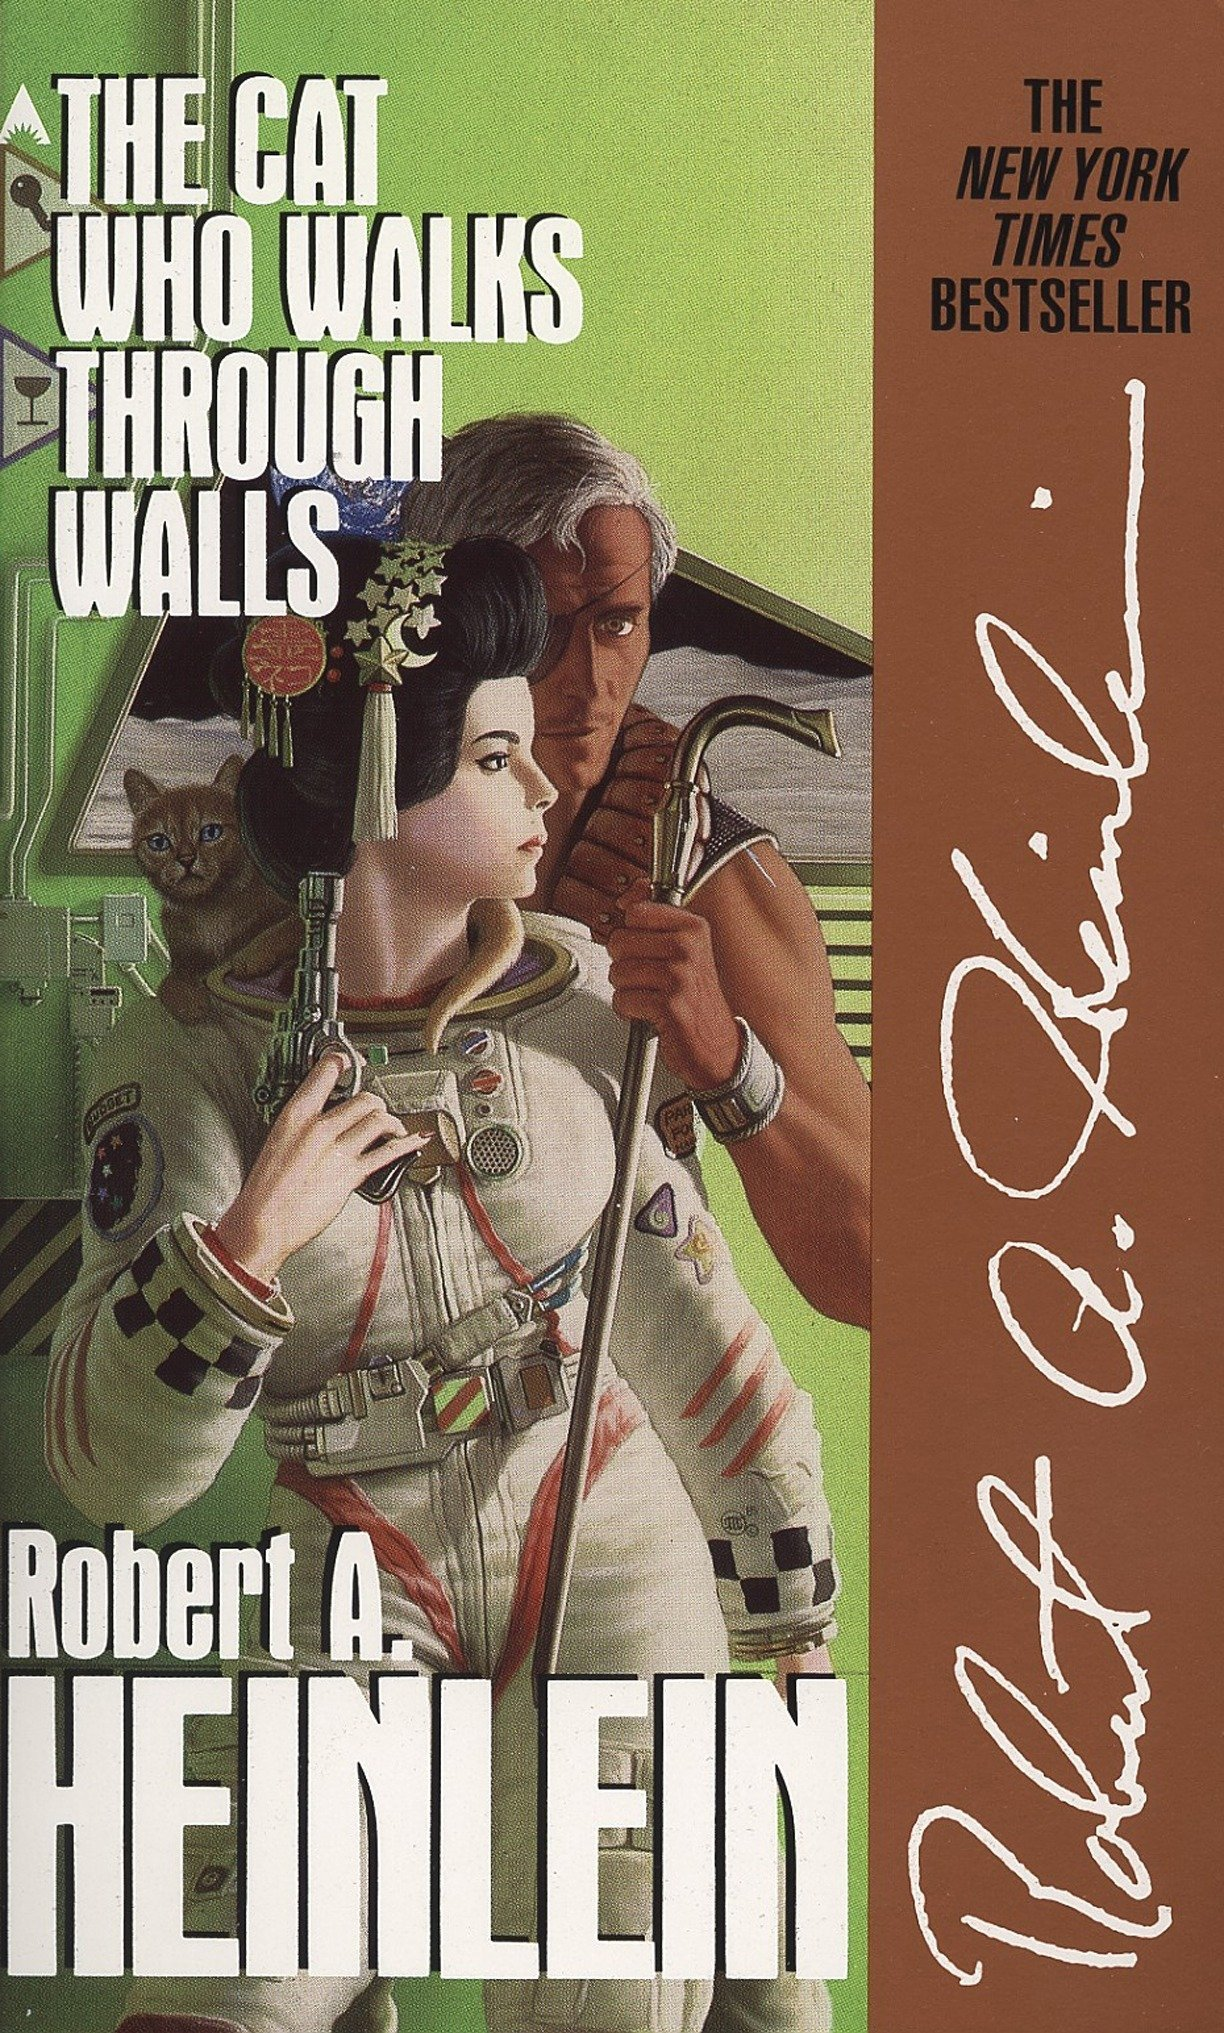 Amazon.com: The Cat Who Walks through Walls (9780441094998): Robert ...